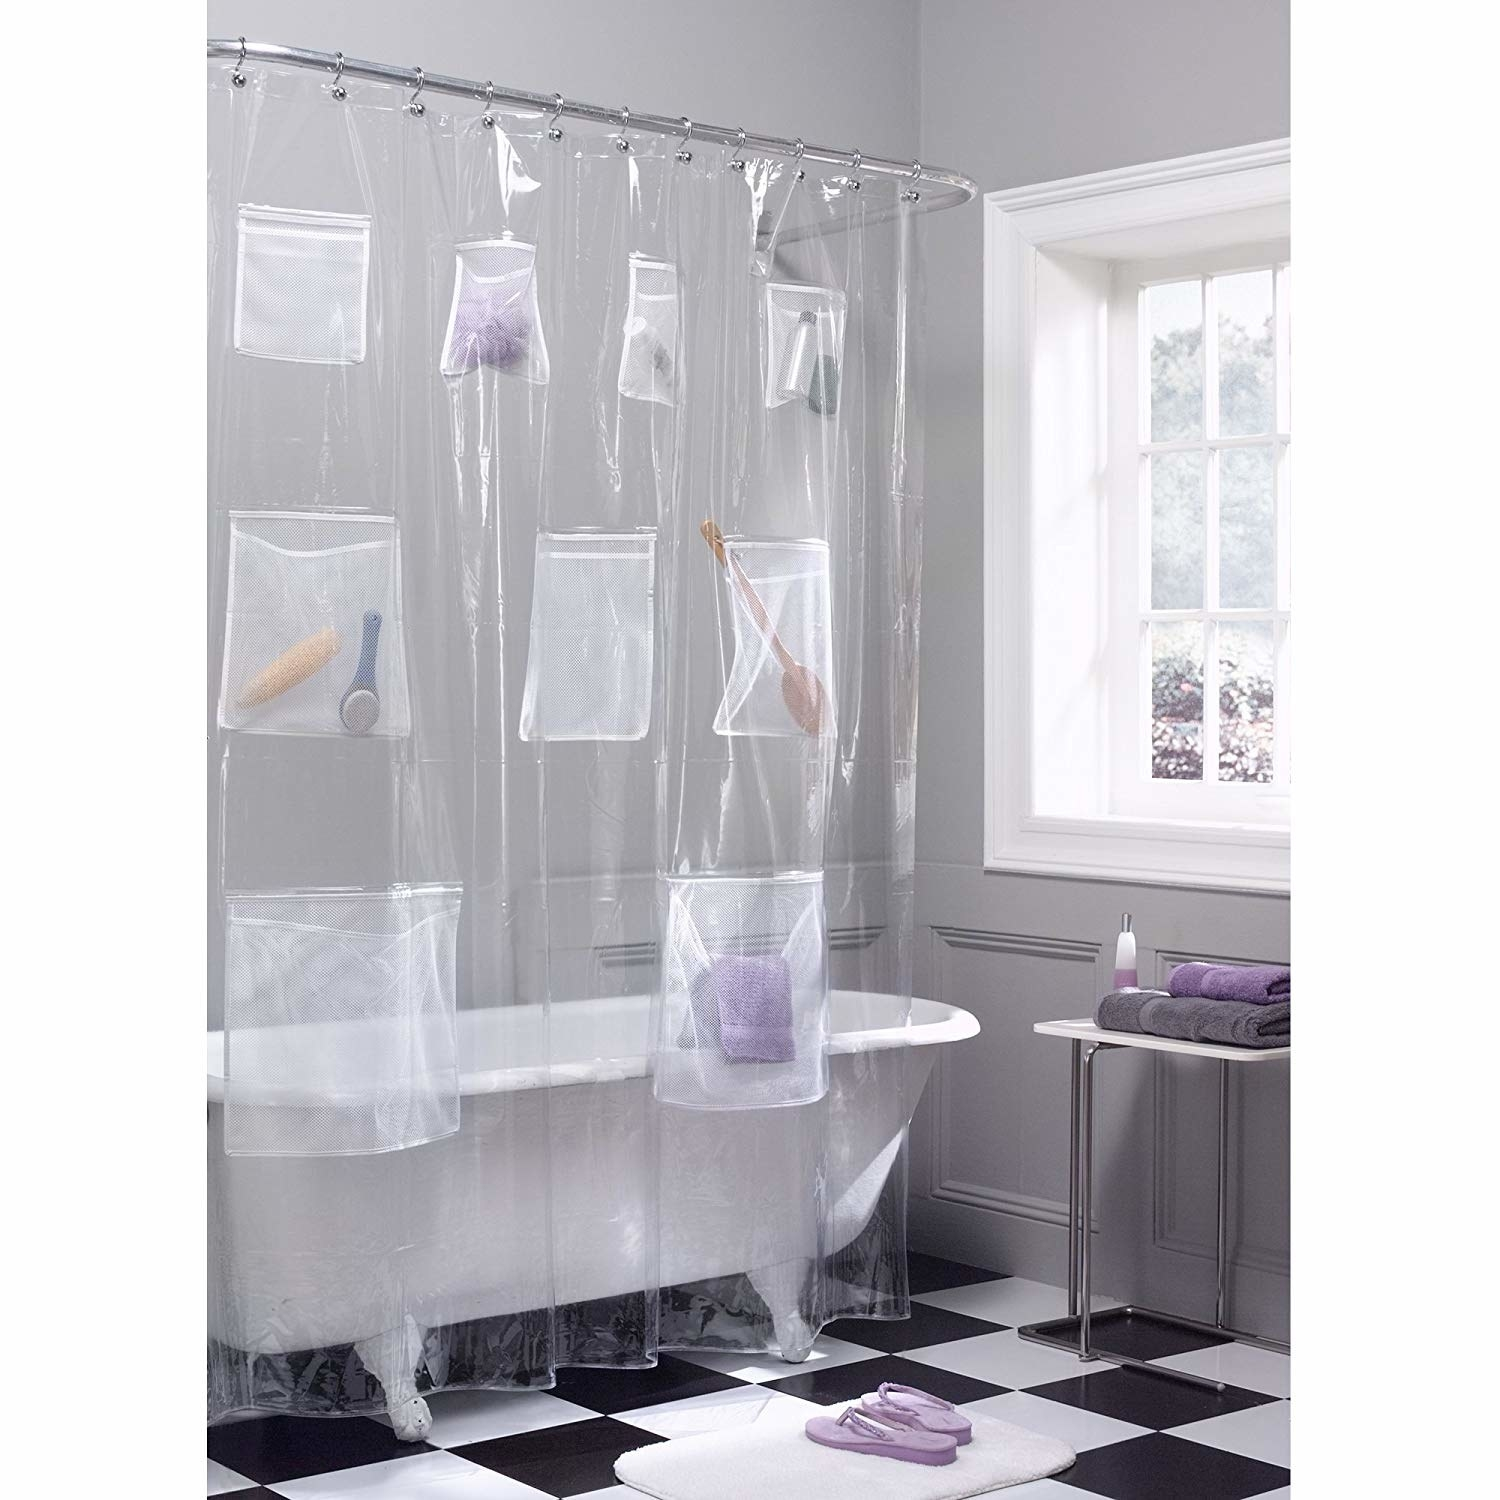 A plastic shower curtain with nine pockets on it The pockets are different sizes and have different items like a loofah, beauty products or towels inside.